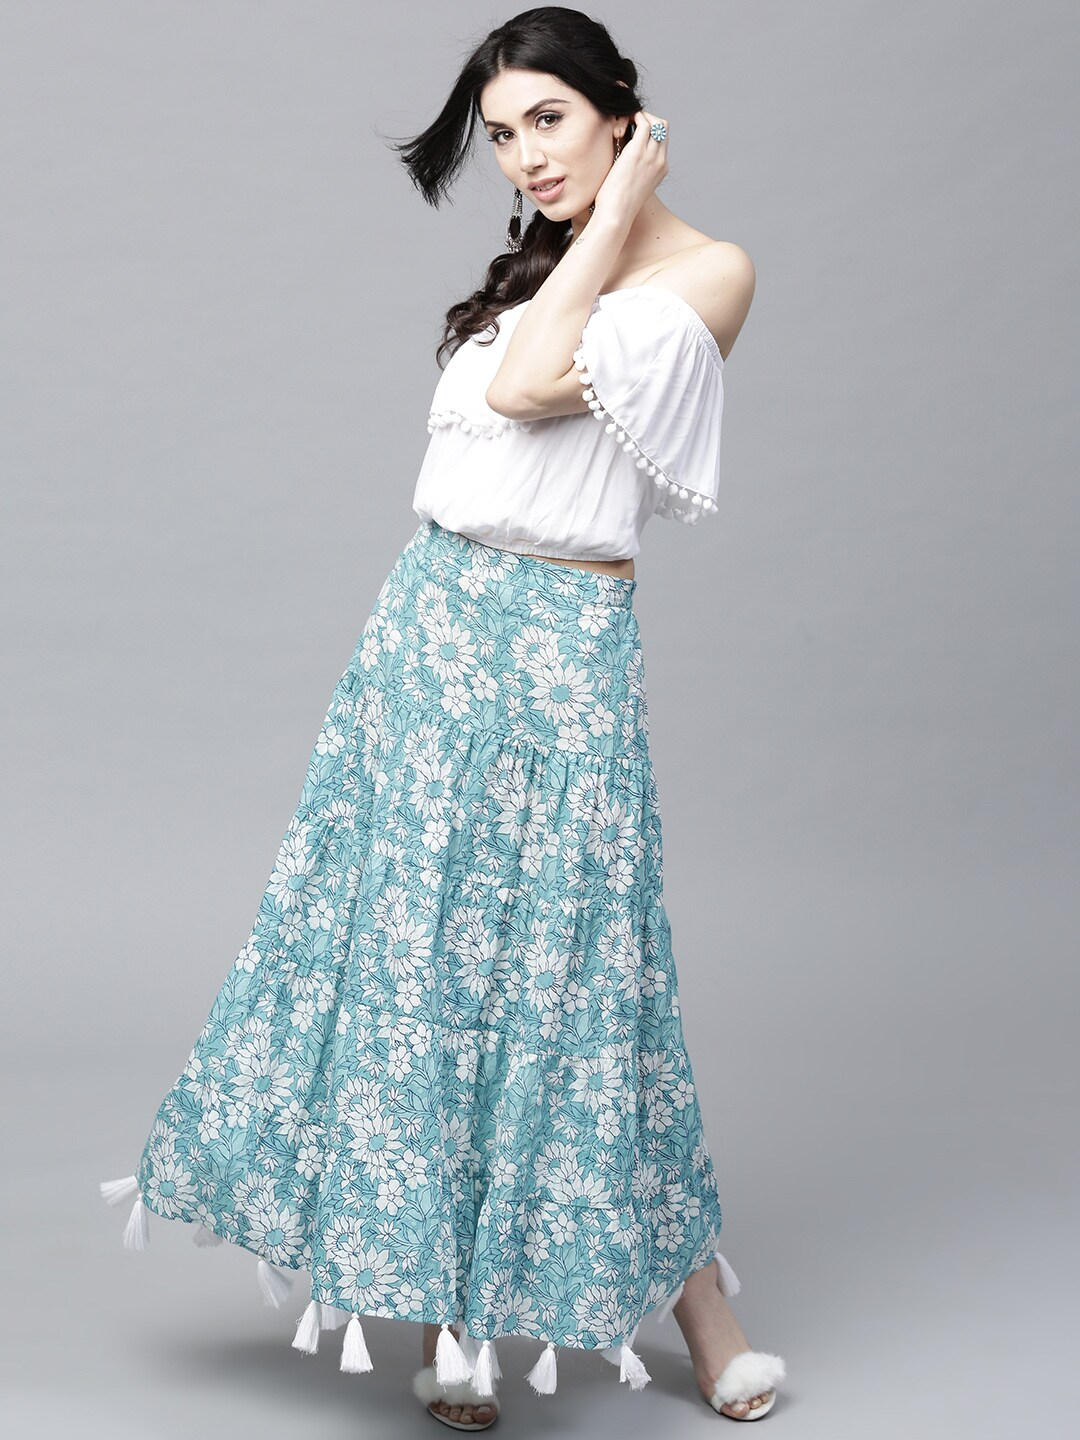 to wear - White Long skirt and top video